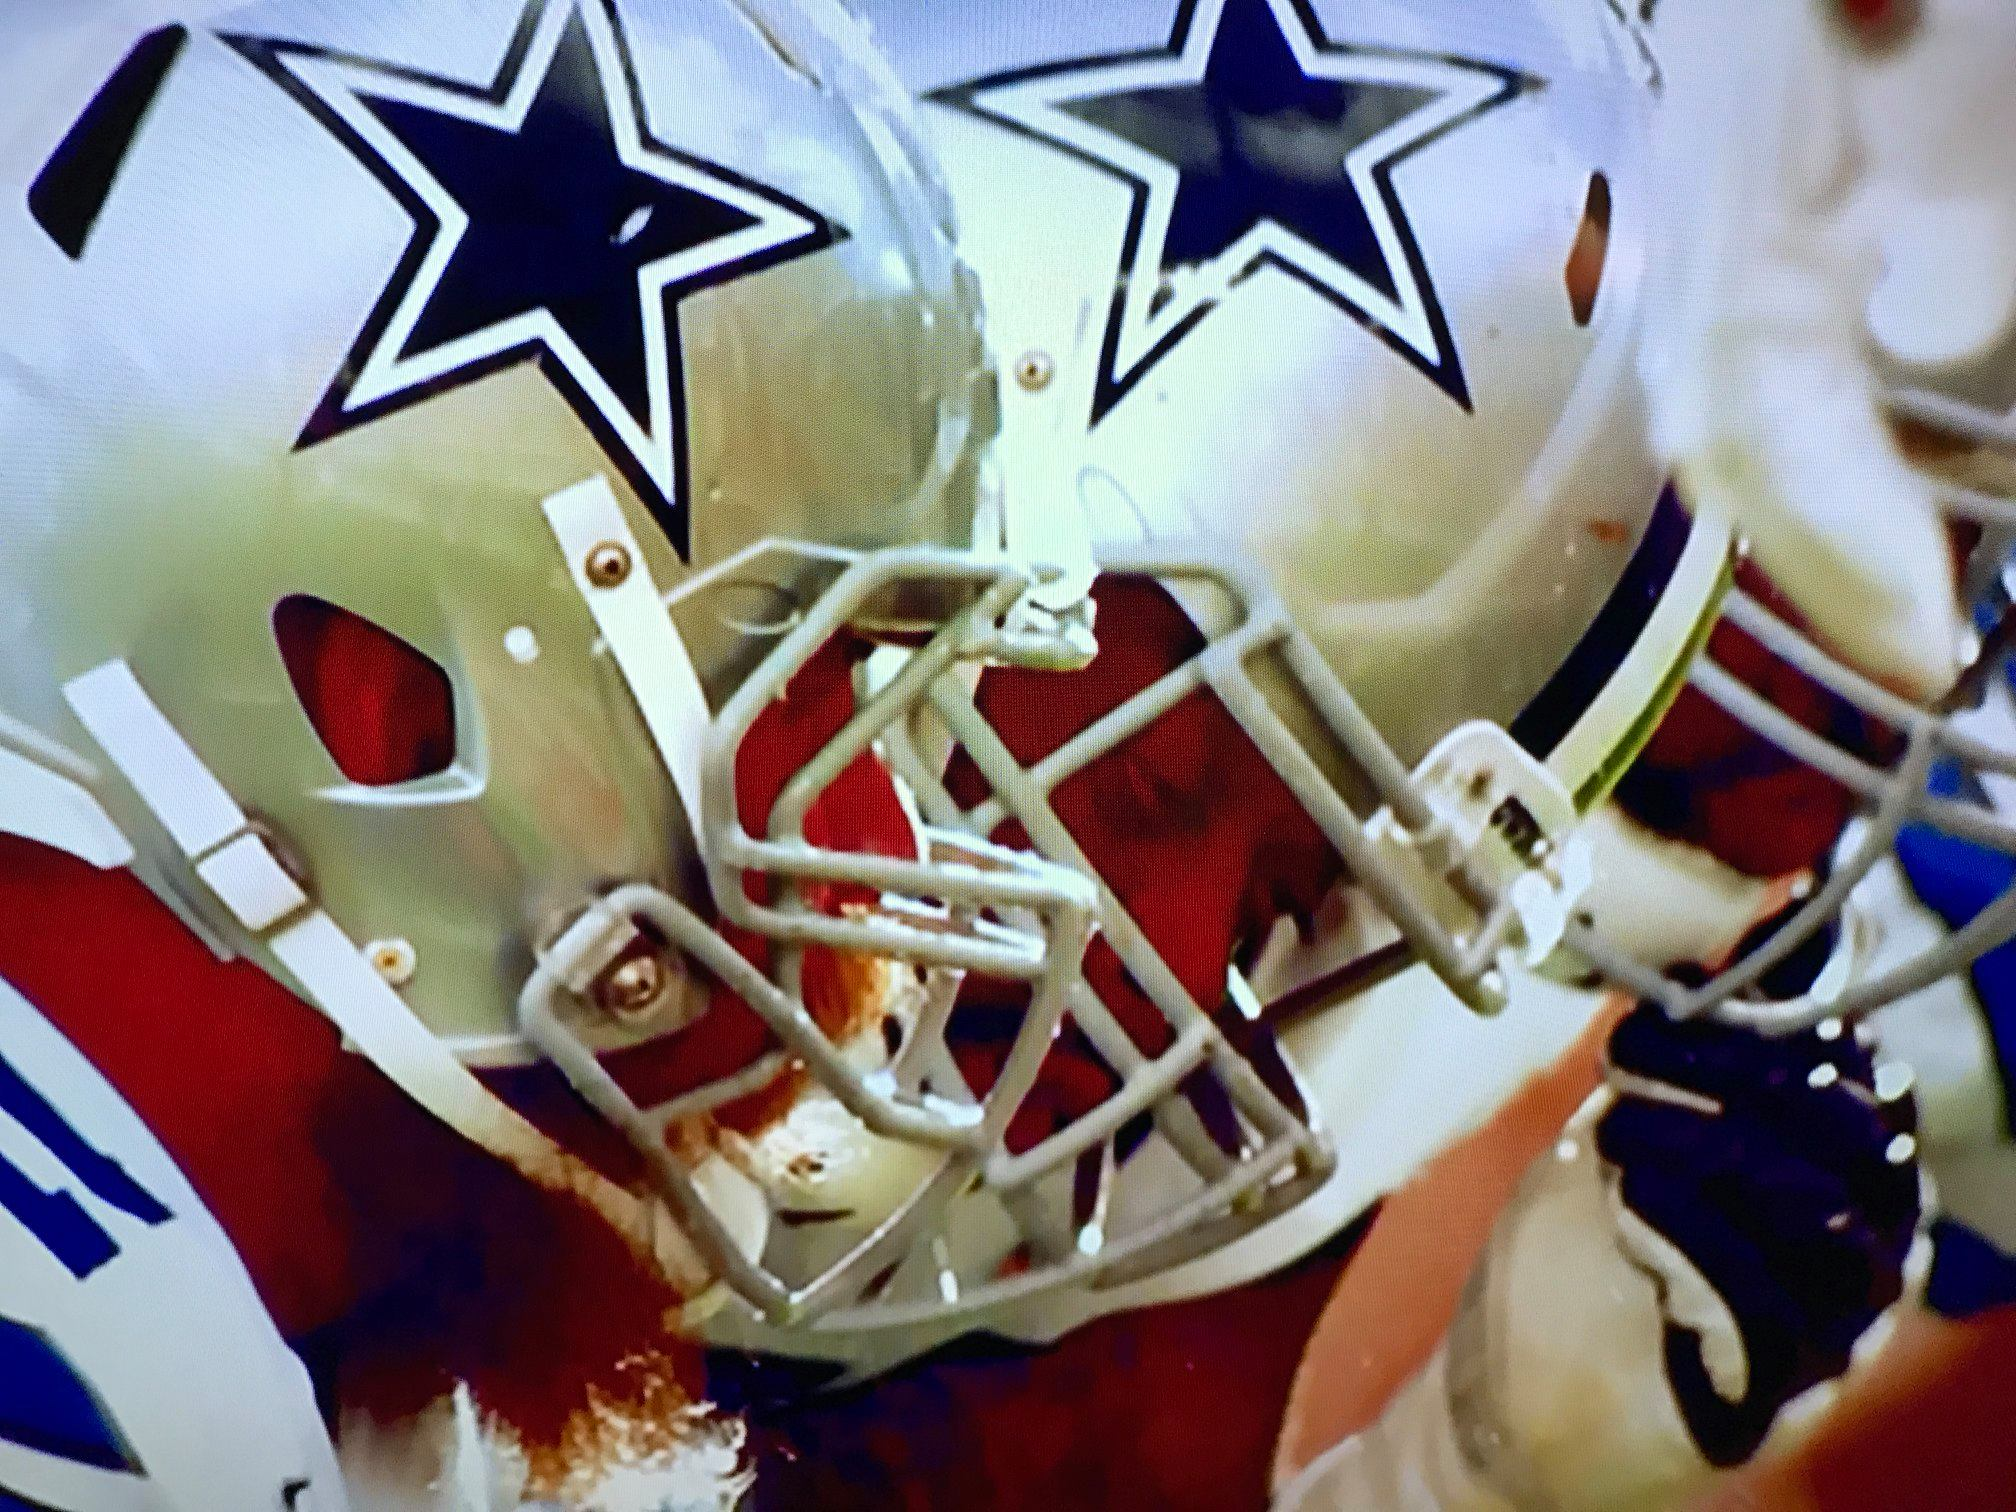 Photograph of Dallas Cowboys helmets